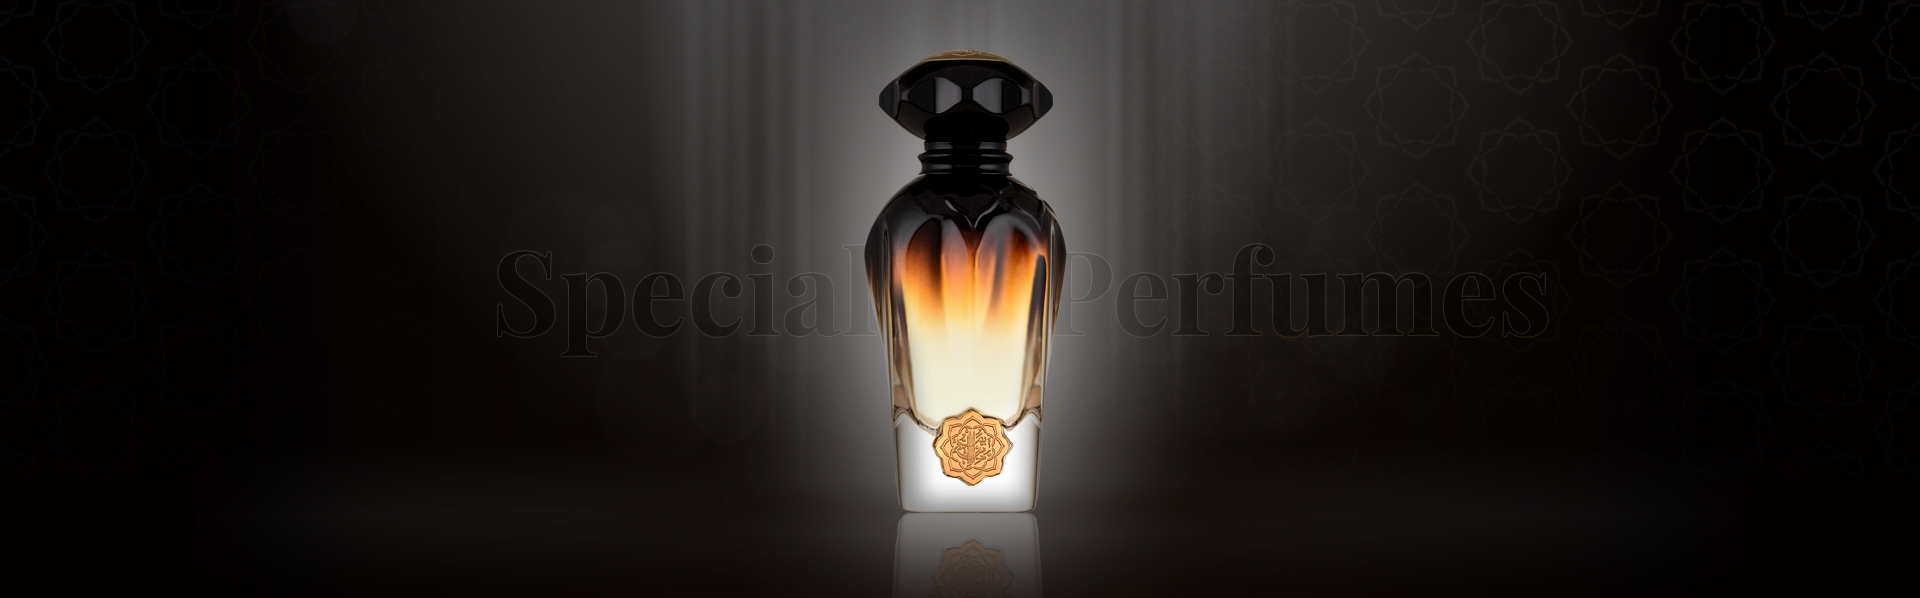 Top-Rated-Best-Special-Perfumes-for-Men-Women-Online-Dubai-UAE